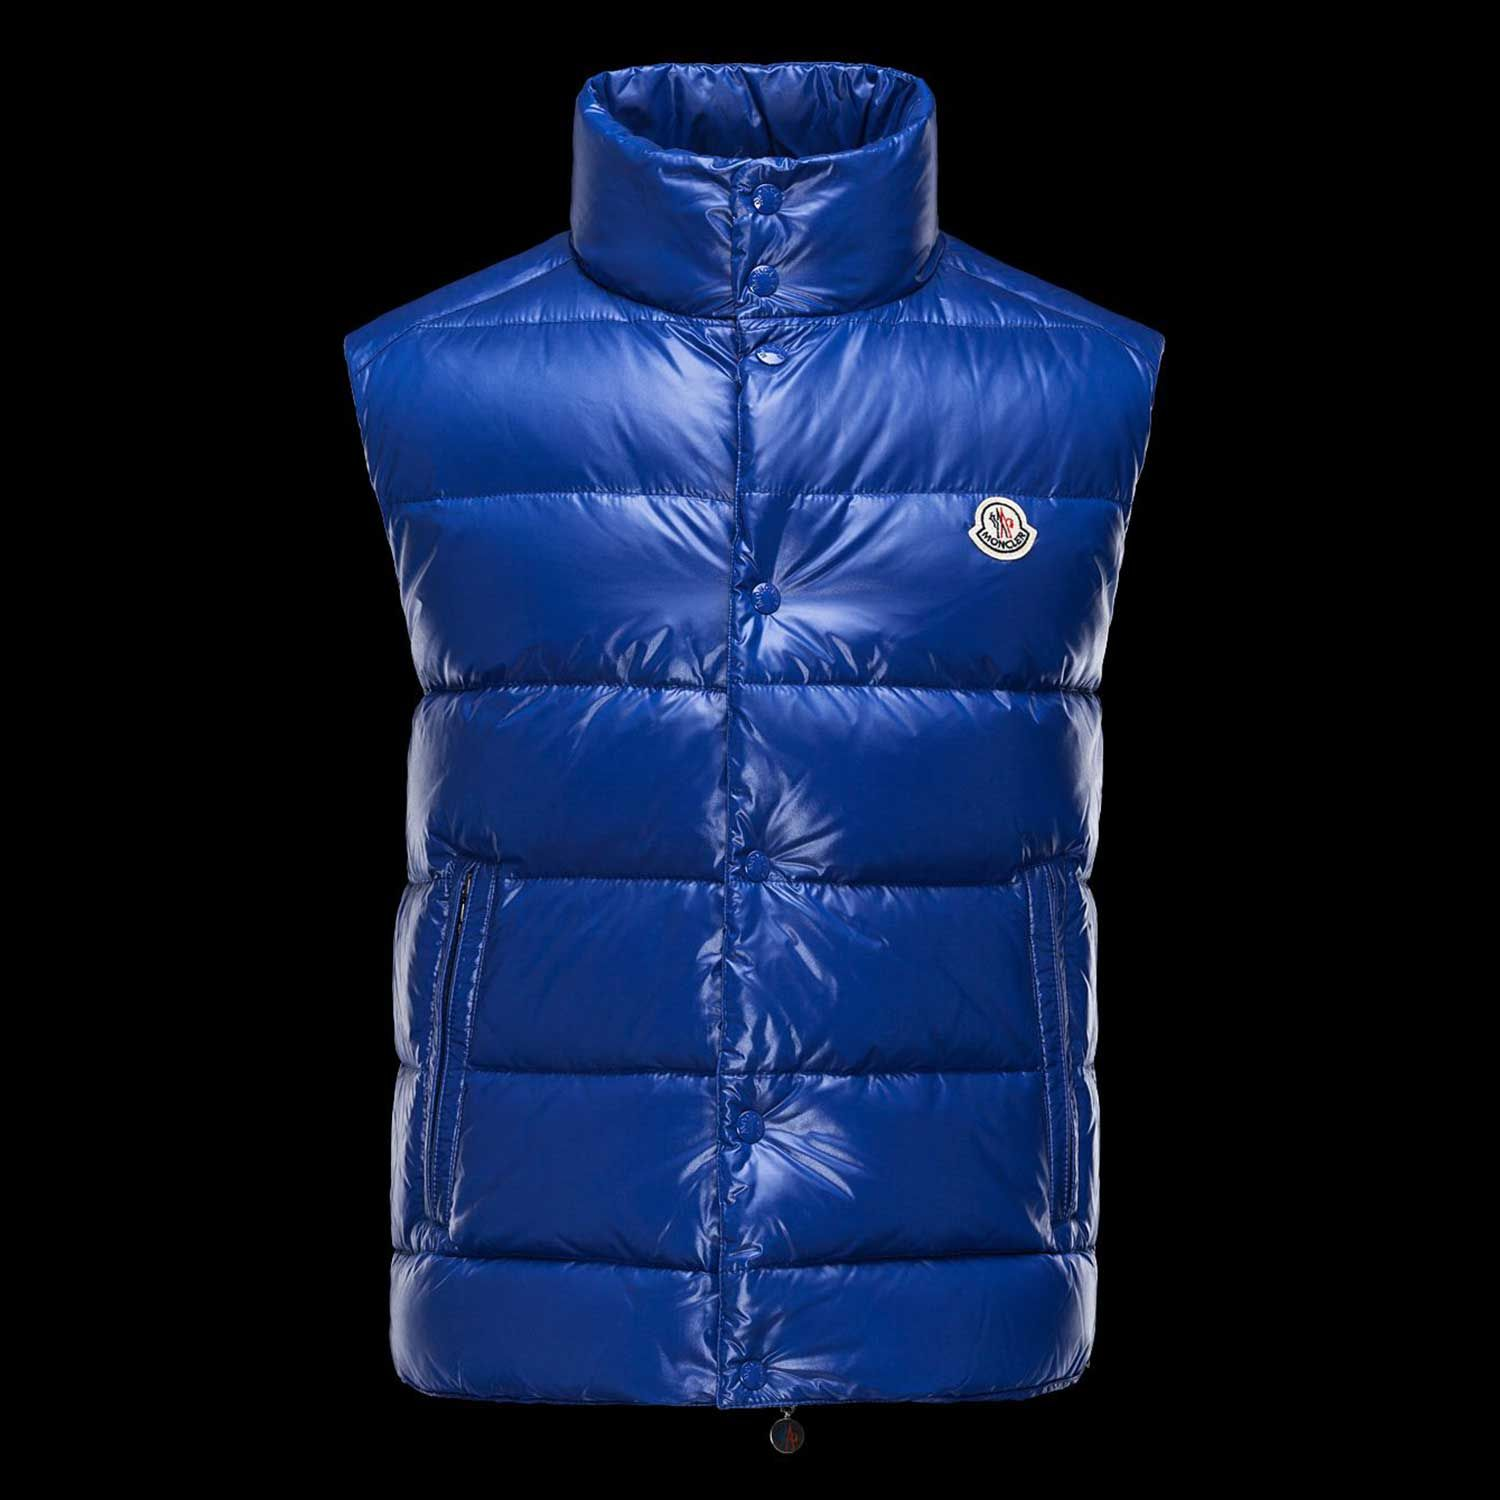 Moncler TIB in Vests for men: find out the product features and shop now  directly from the Moncler official Online Store.